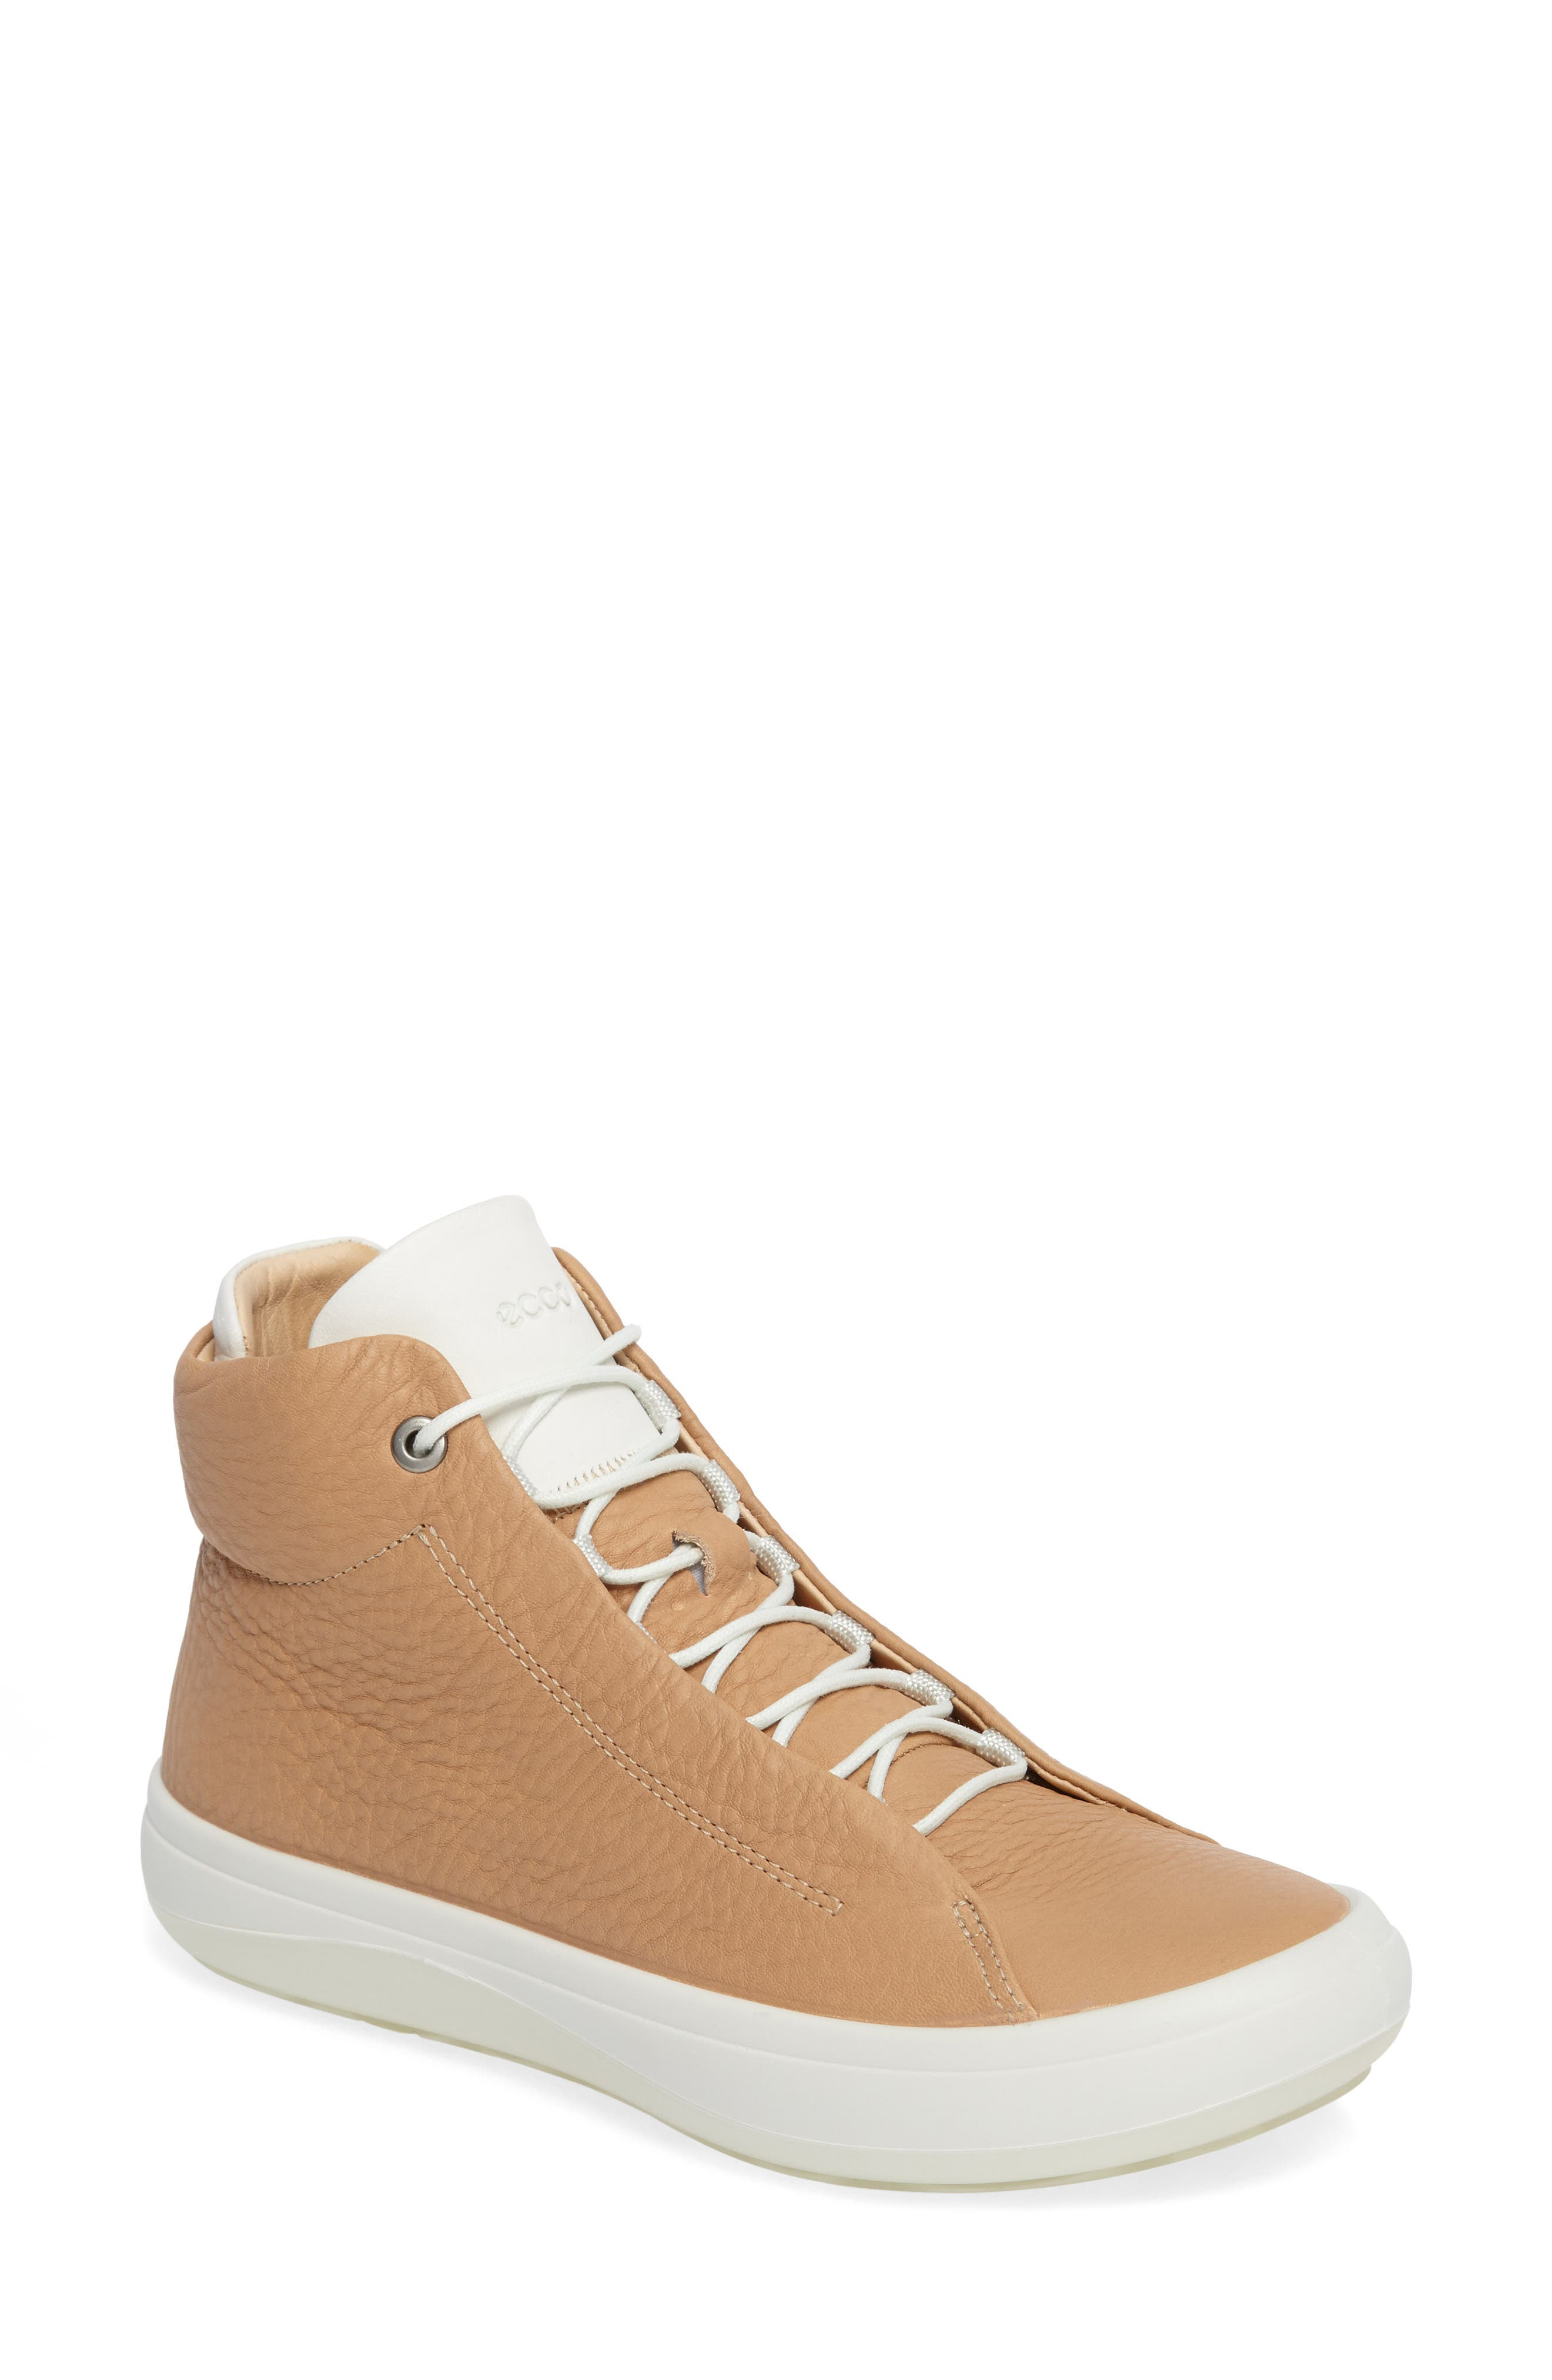 Kinhin Sneaker,                             Main thumbnail 1, color,                             Volluto Leather